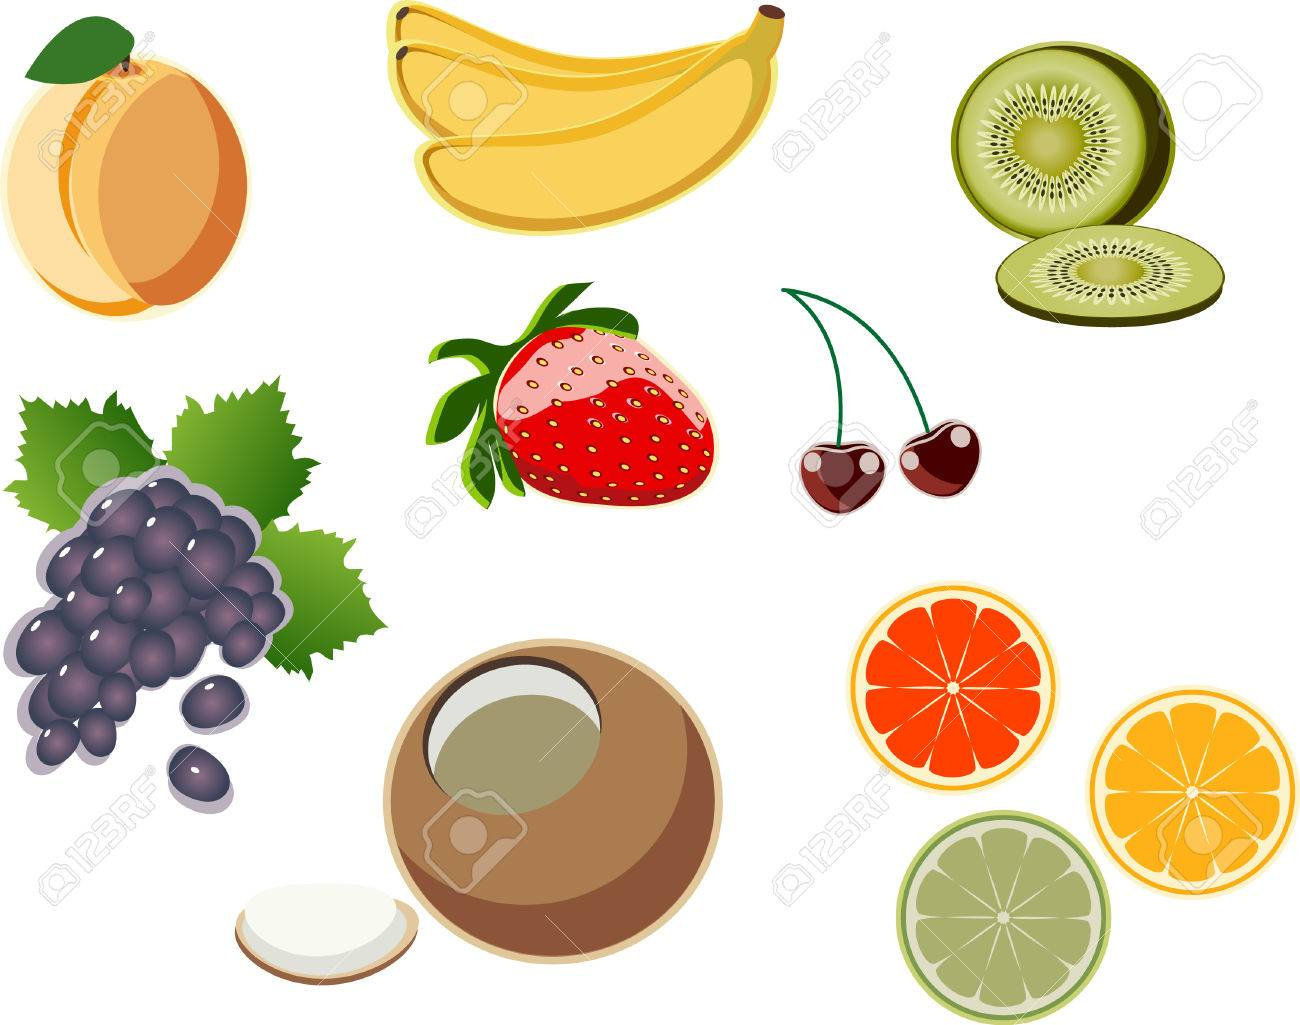 a set of vector images fruit № 1 Stock Vector - 3679967